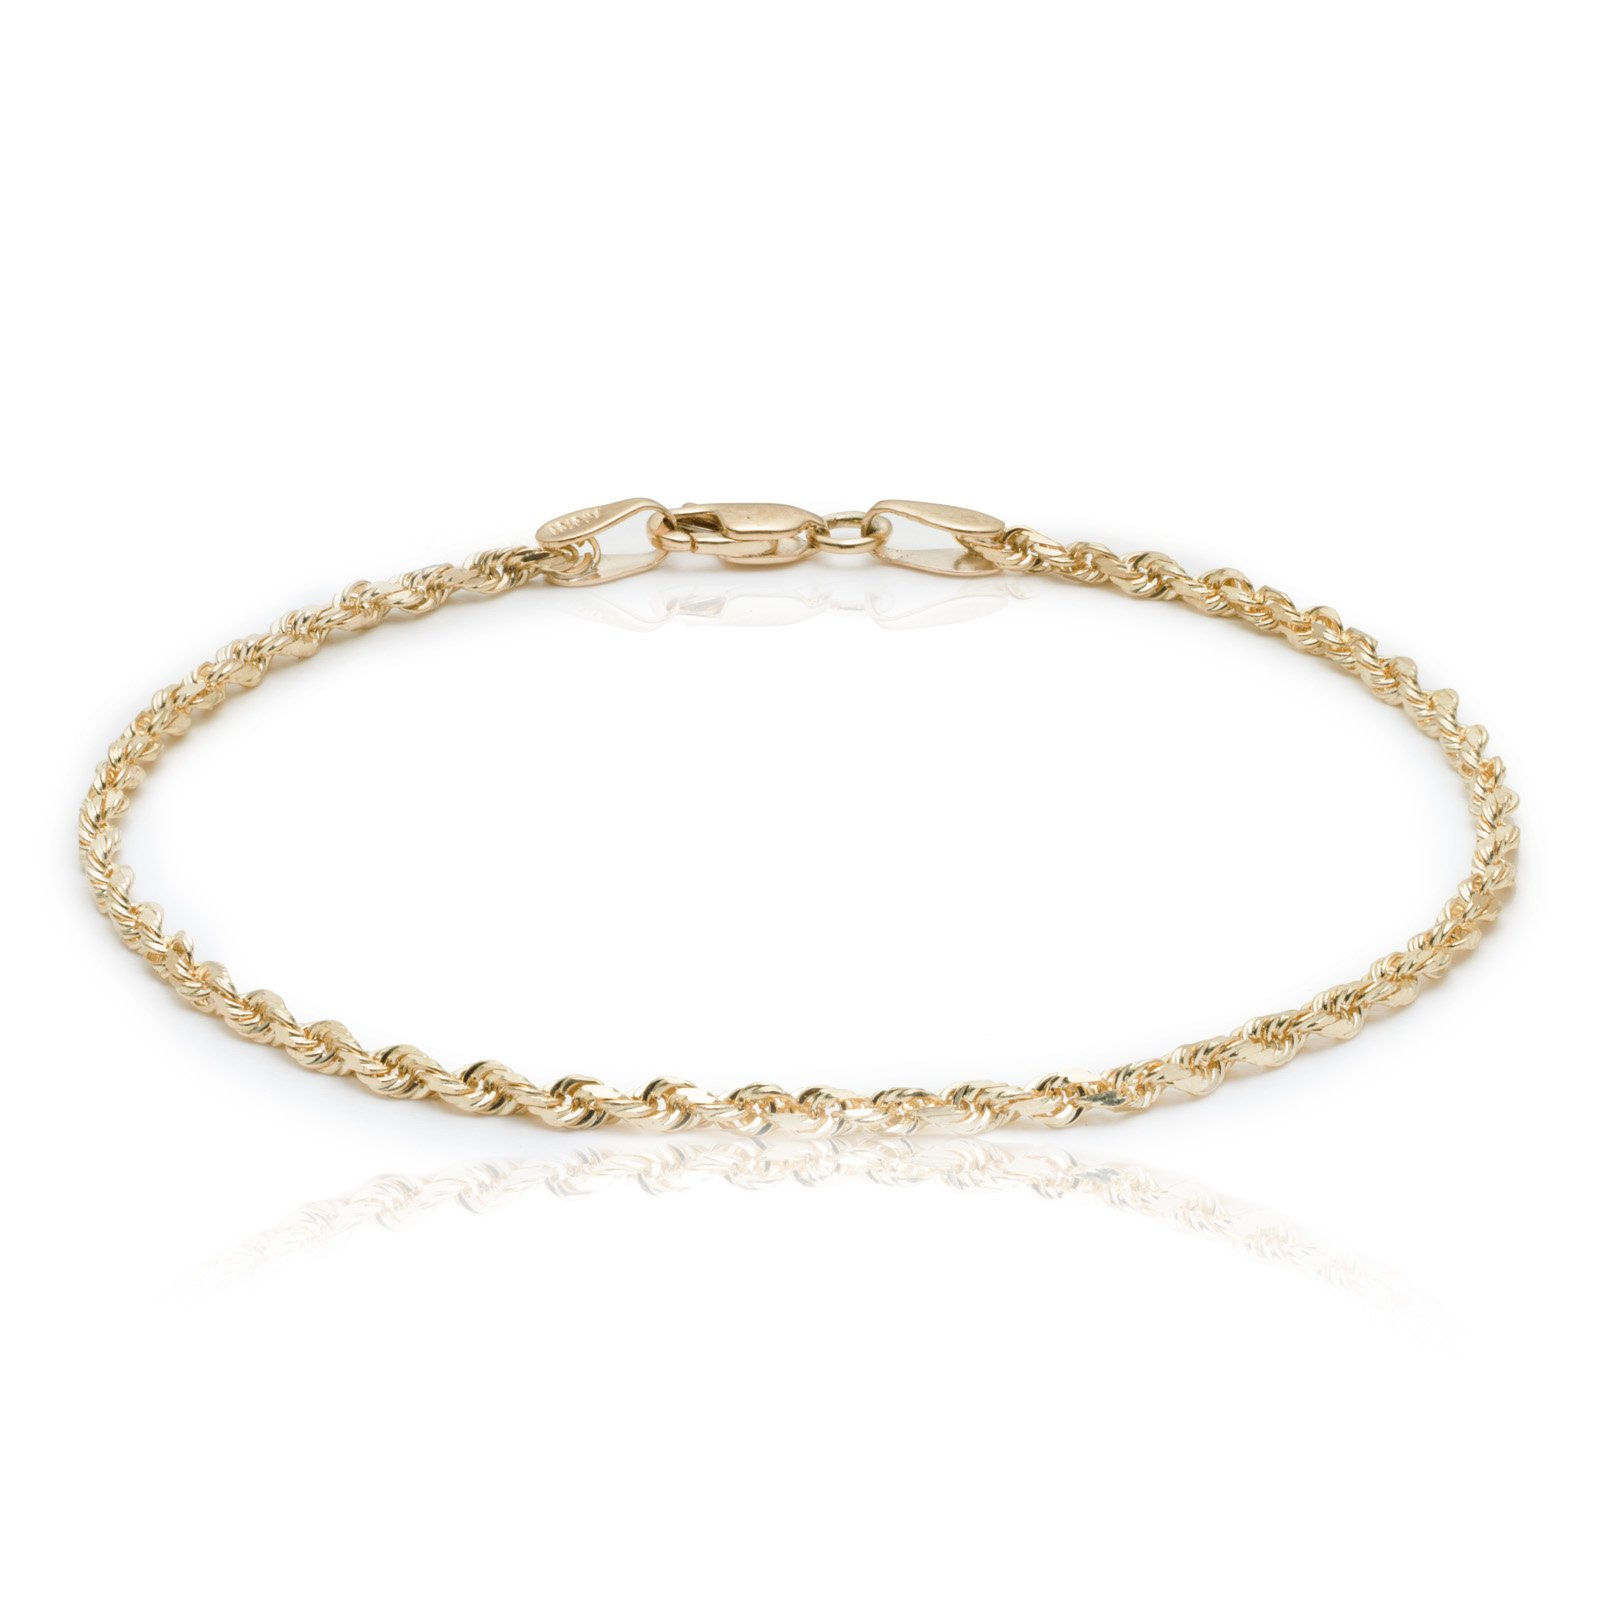 9 Inch 10k Yellow Gold Solid Diamond Cut Rope Chain Bracelet and Anklet for Men & Women, 2.25mm (0.09'')